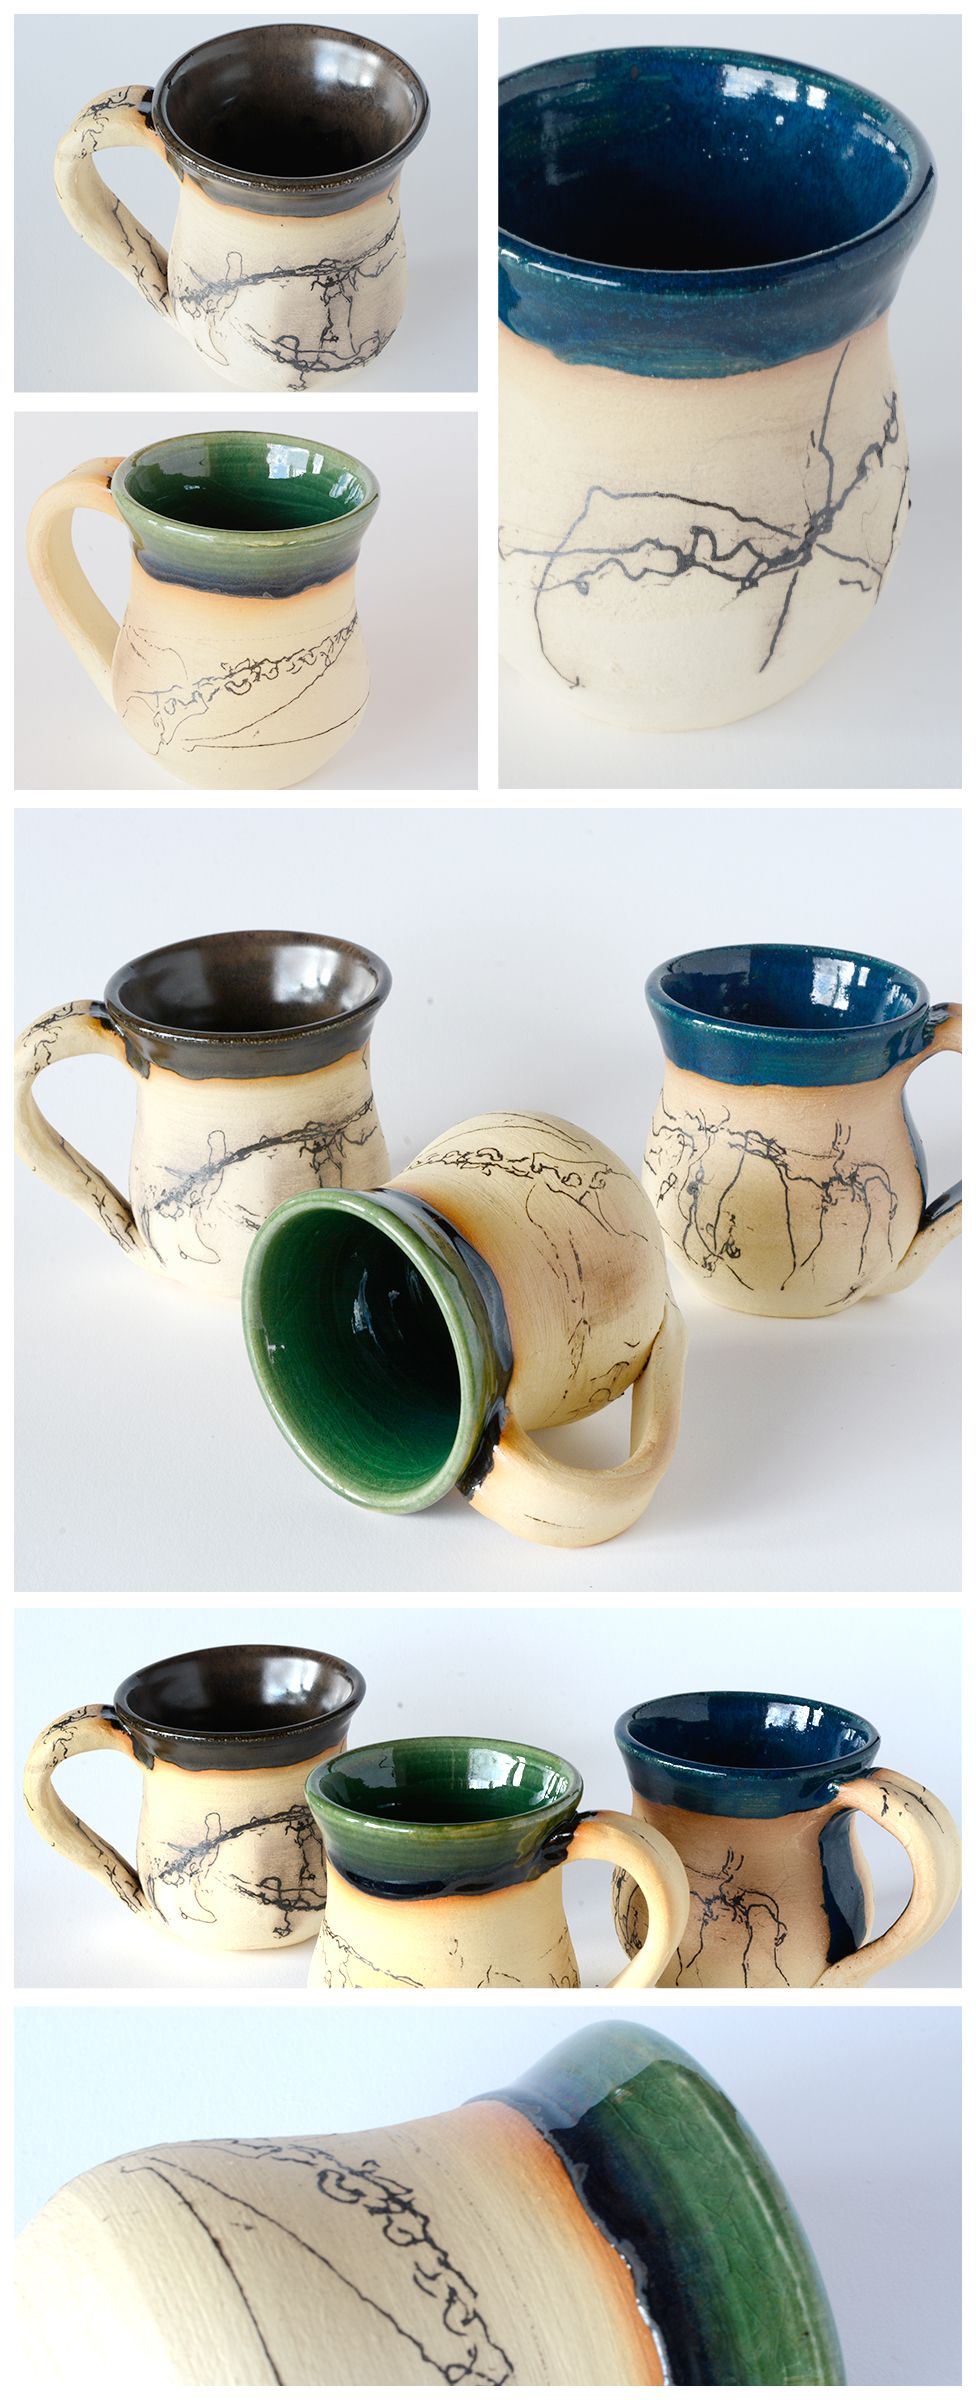 Horsehair Pottery And Coffee Mugs All In One Glazed Inside And Horse Hair Applied On The Outside Order Your Personal Horse Hair Pottery Pottery Mugs Pottery